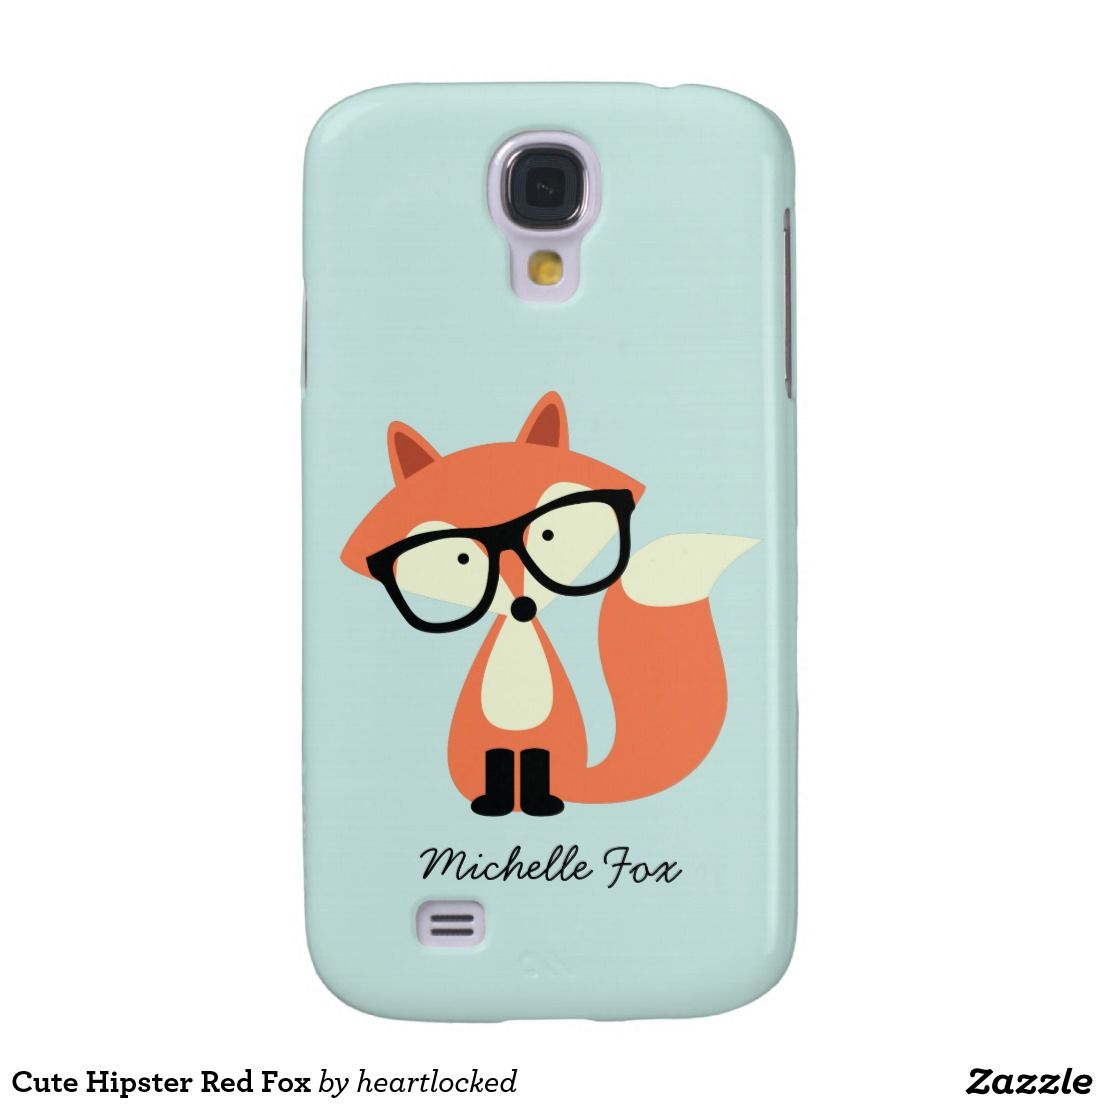 Cute Hipster Red Fox Galaxy S4 Covers